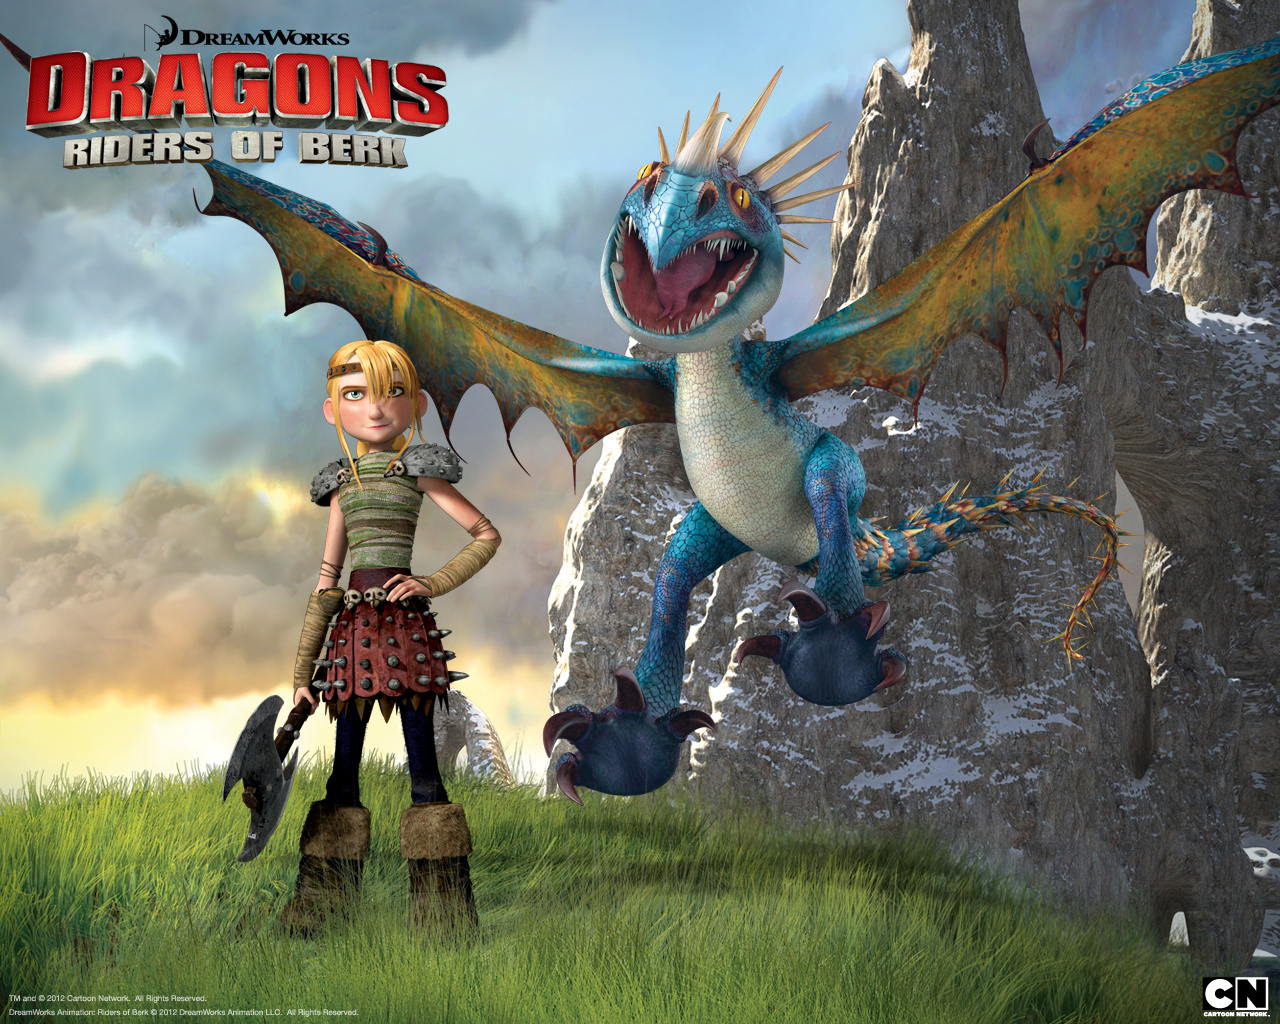 Image astrid stormfly dreamworks dragons riders of berk image astrid stormfly dreamworks dragons riders of berk wallpaper 2g how to train your dragon wiki fandom powered by wikia ccuart Image collections